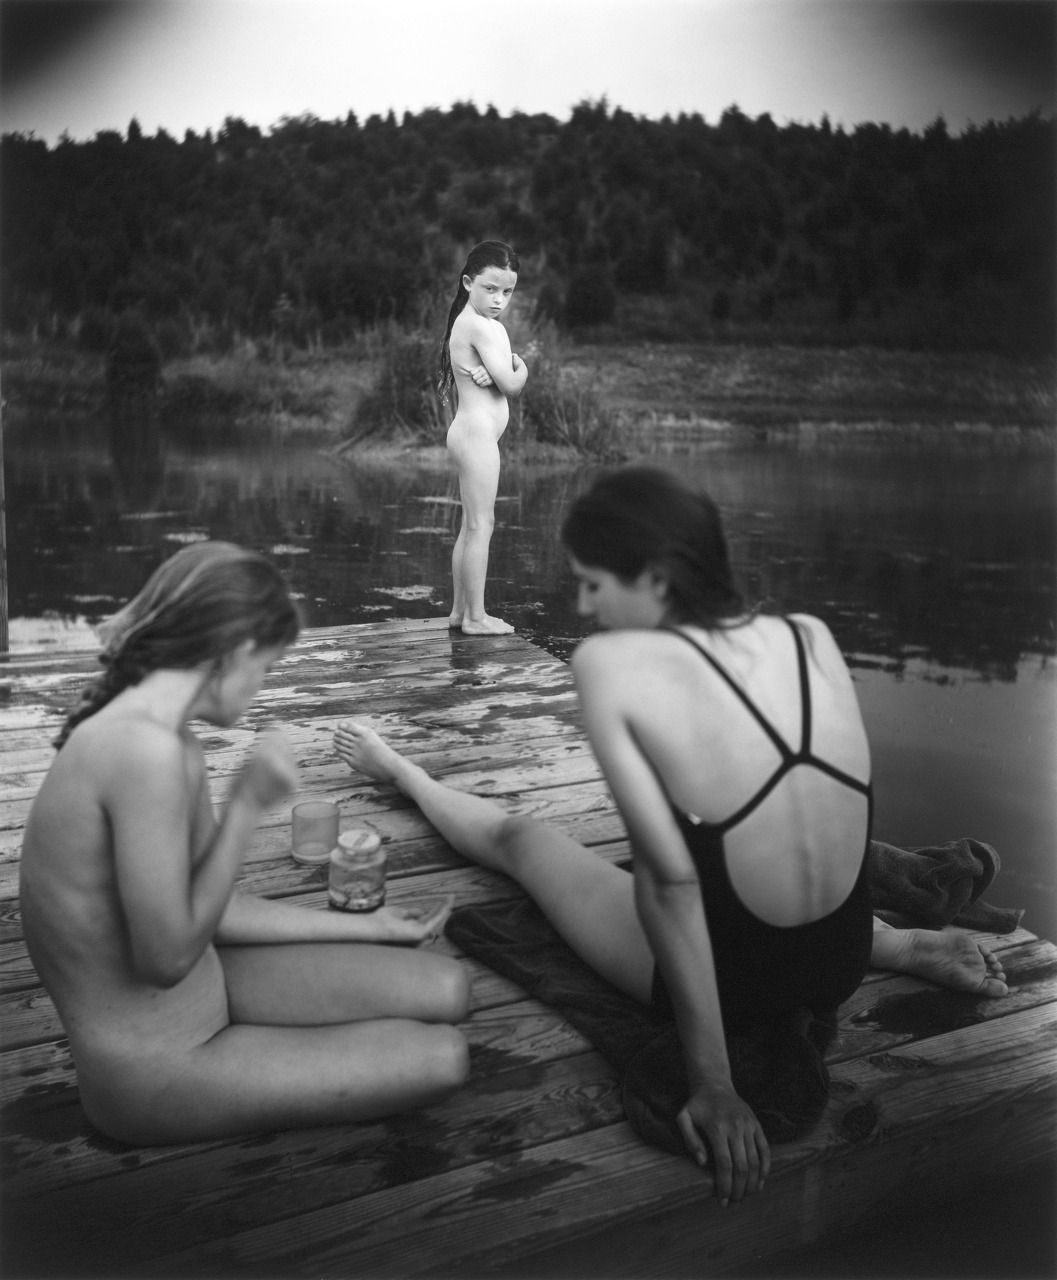 sally mann immediate family 1000+ images about SALLY MANN on Pinterest | Sally Mann Photography, Immediate Family and Sally Mann Photos